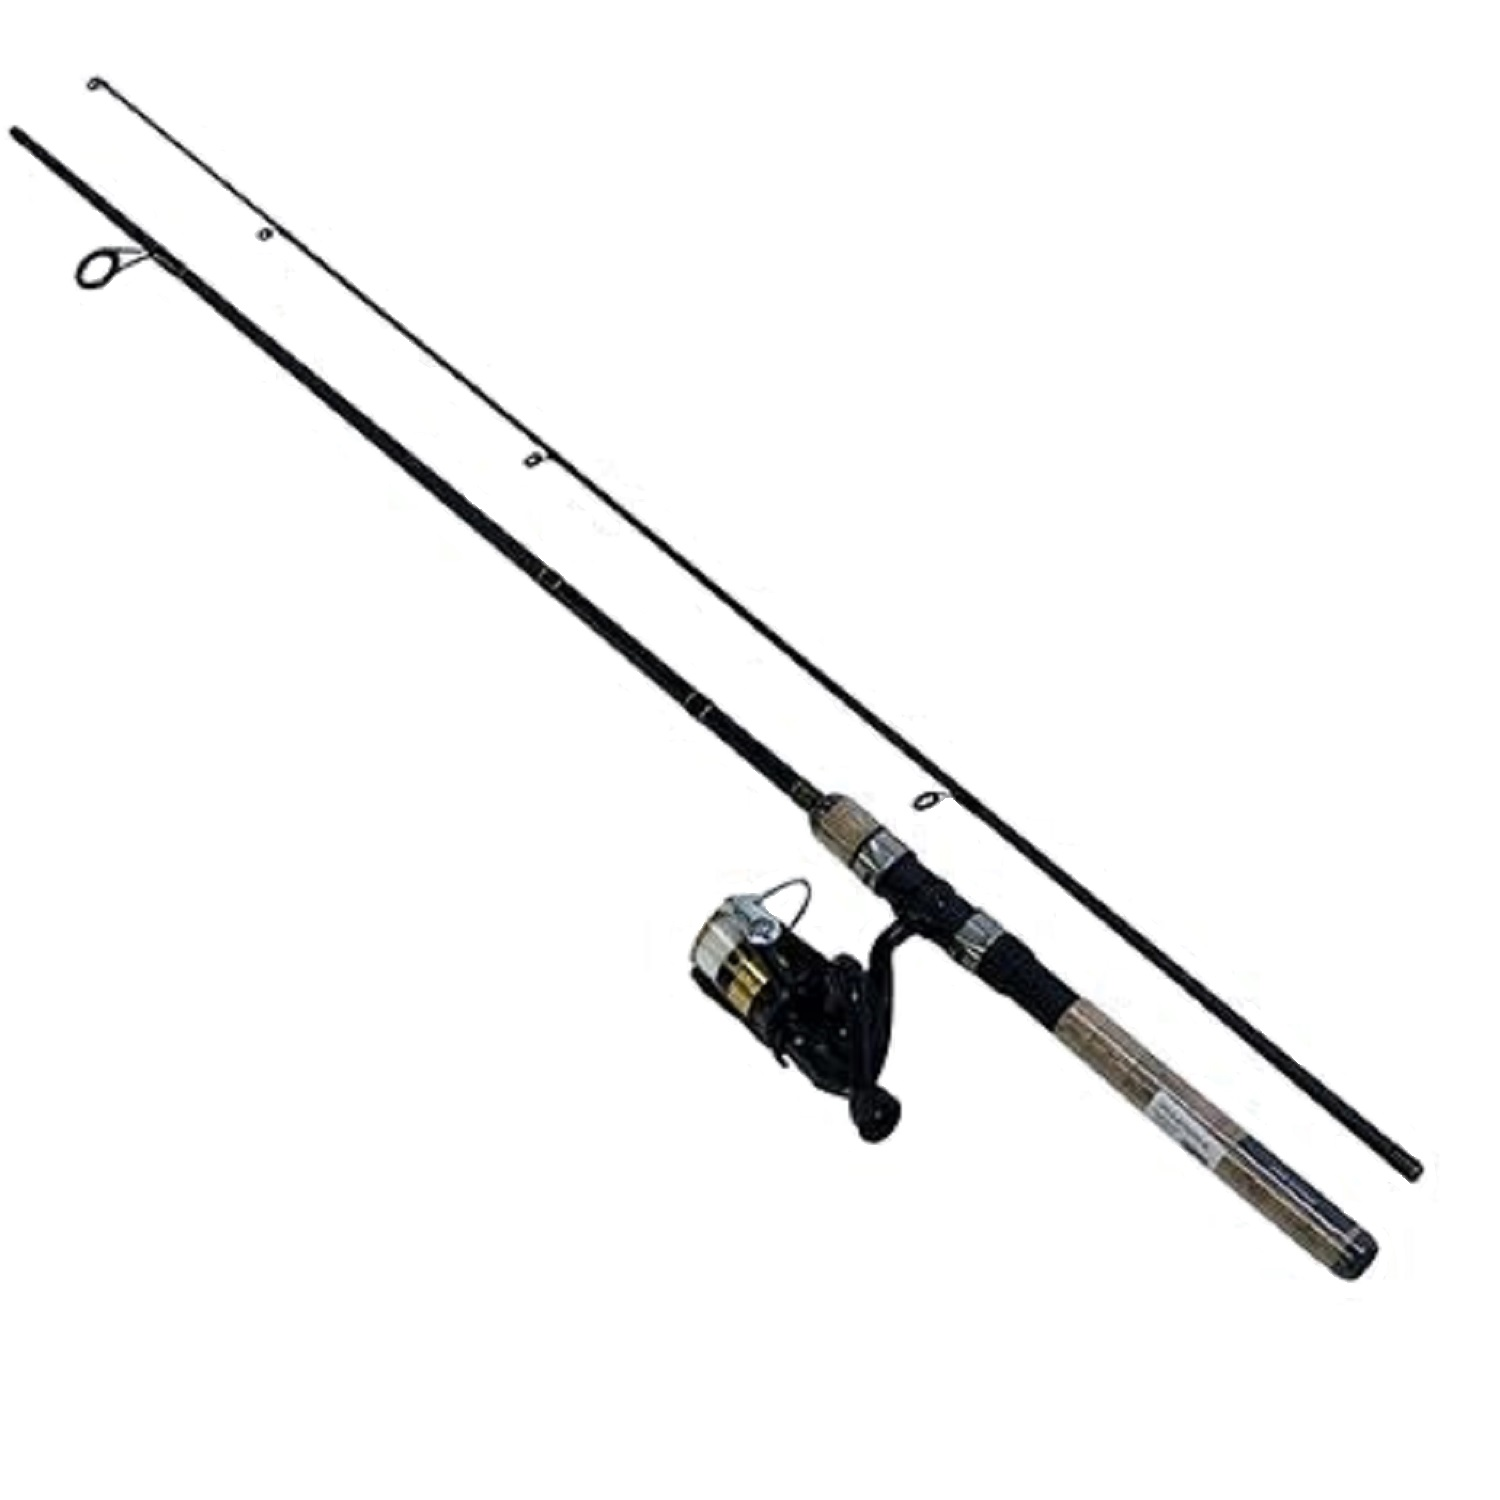 Daiwa D-Shock Reel and Rod Combo with Line 7' Medium Action